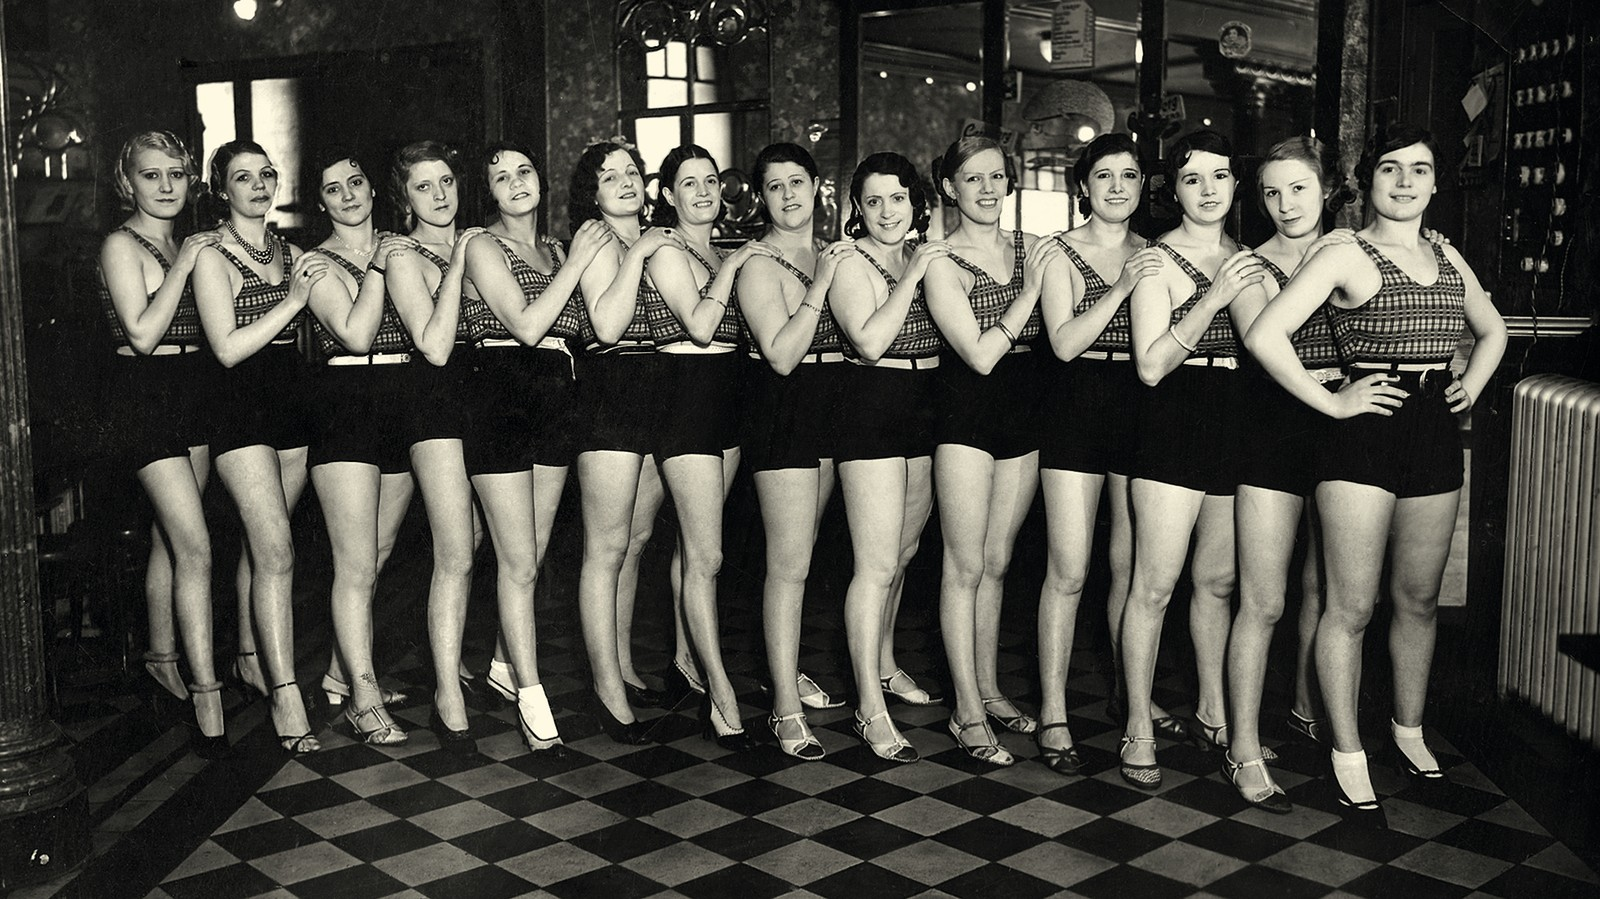 A Look Inside Paris' Luxurious Brothels – When They Were Legal